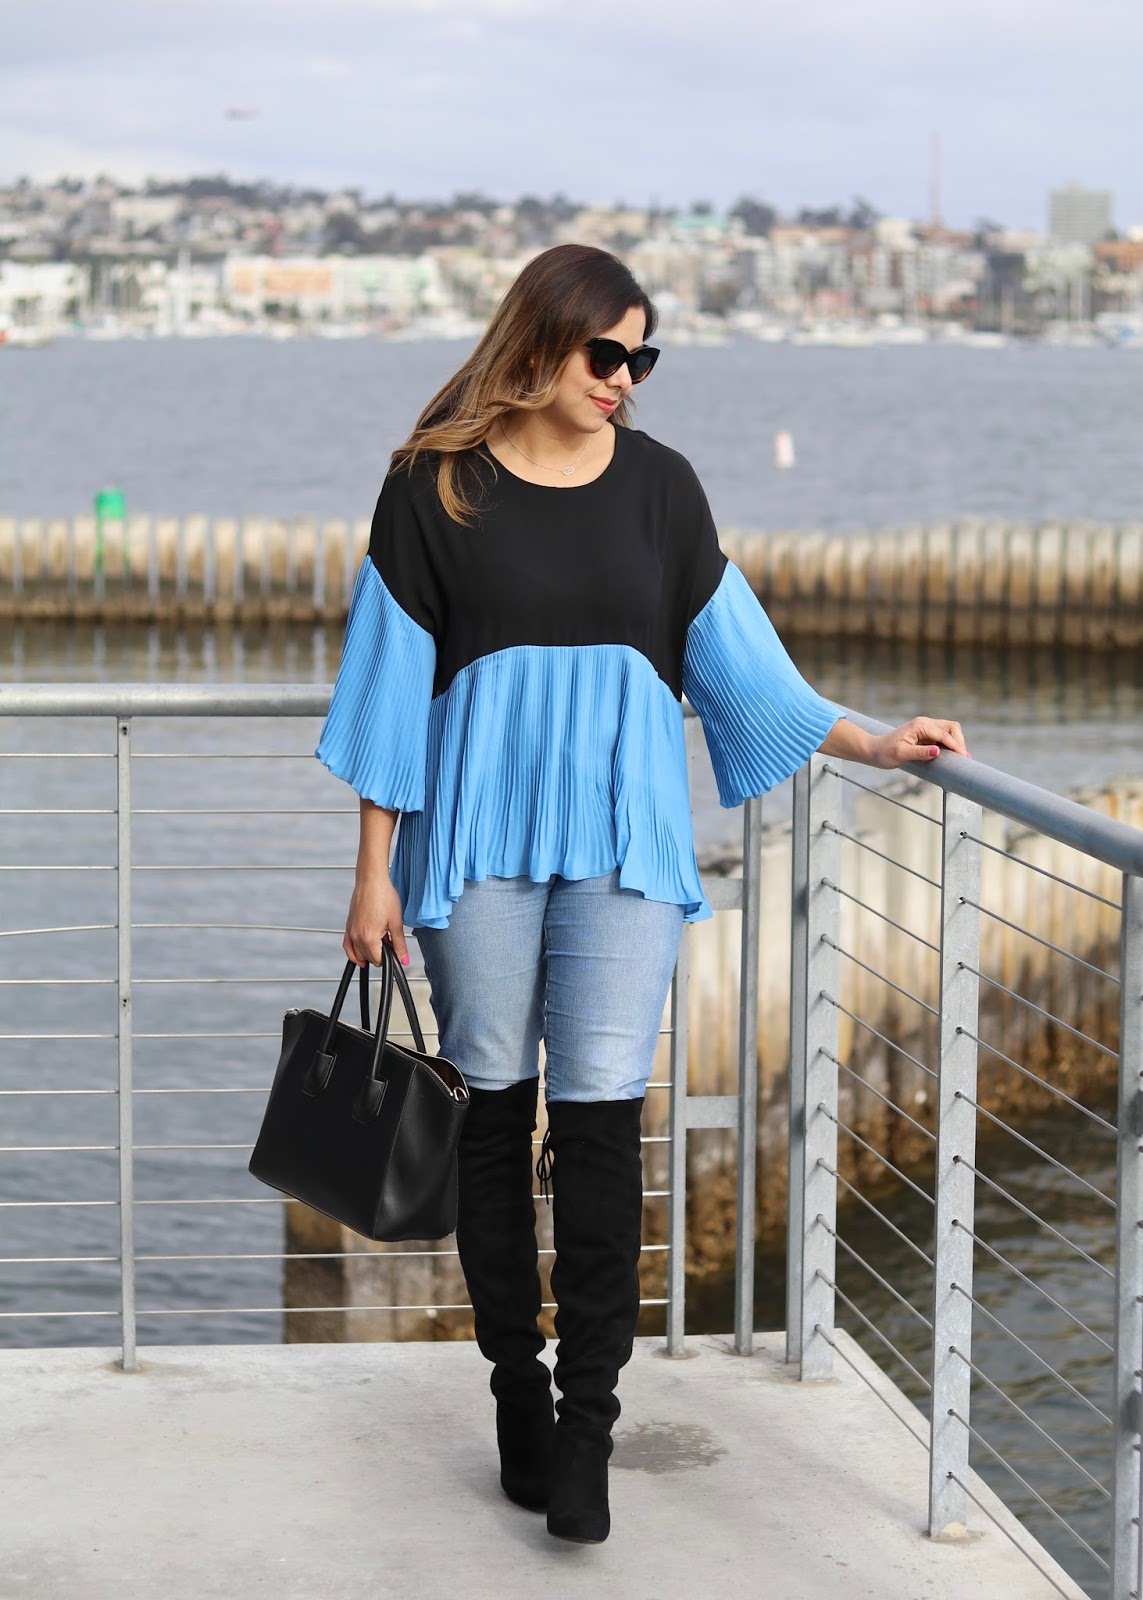 Belle Sleeved Top, colorblocked Belle Sleeved Top, san diego fashion blogger